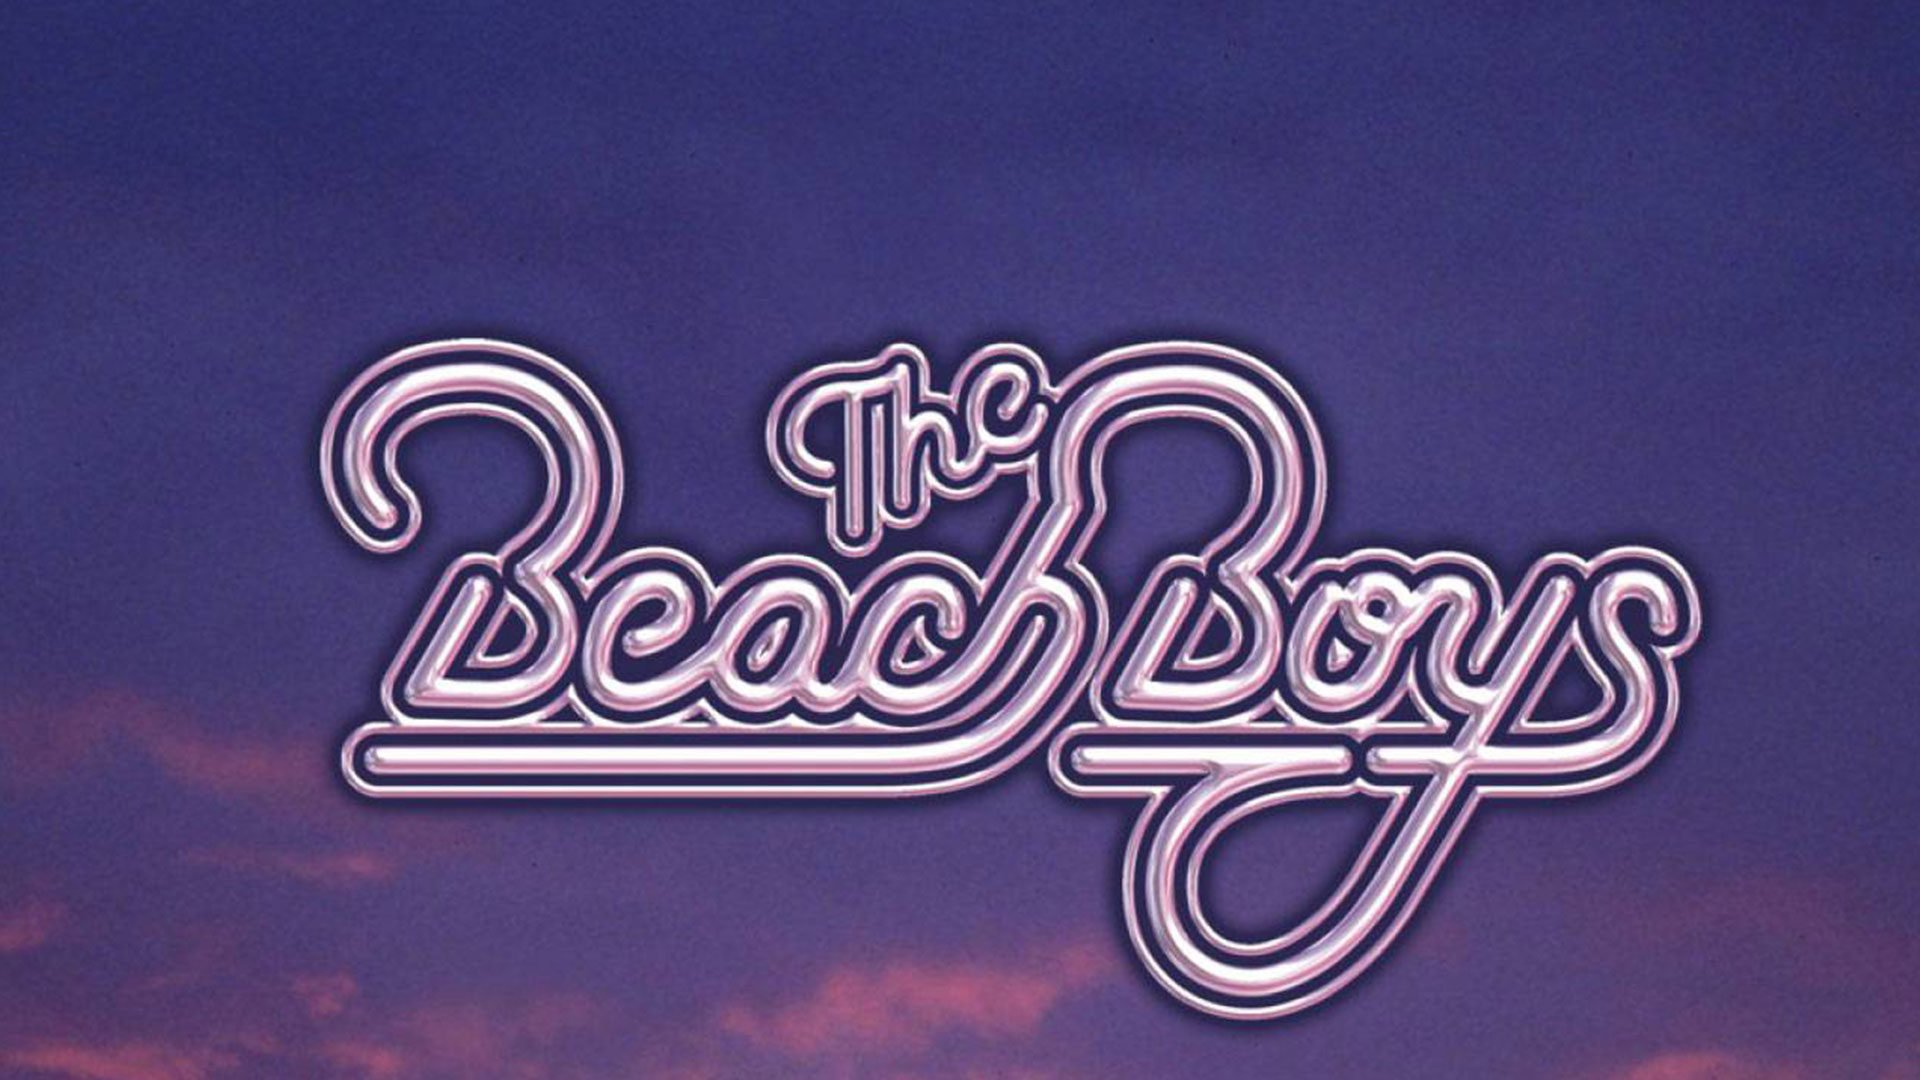 The Beach Boys — Live in Concert, Knebworth, England 1980